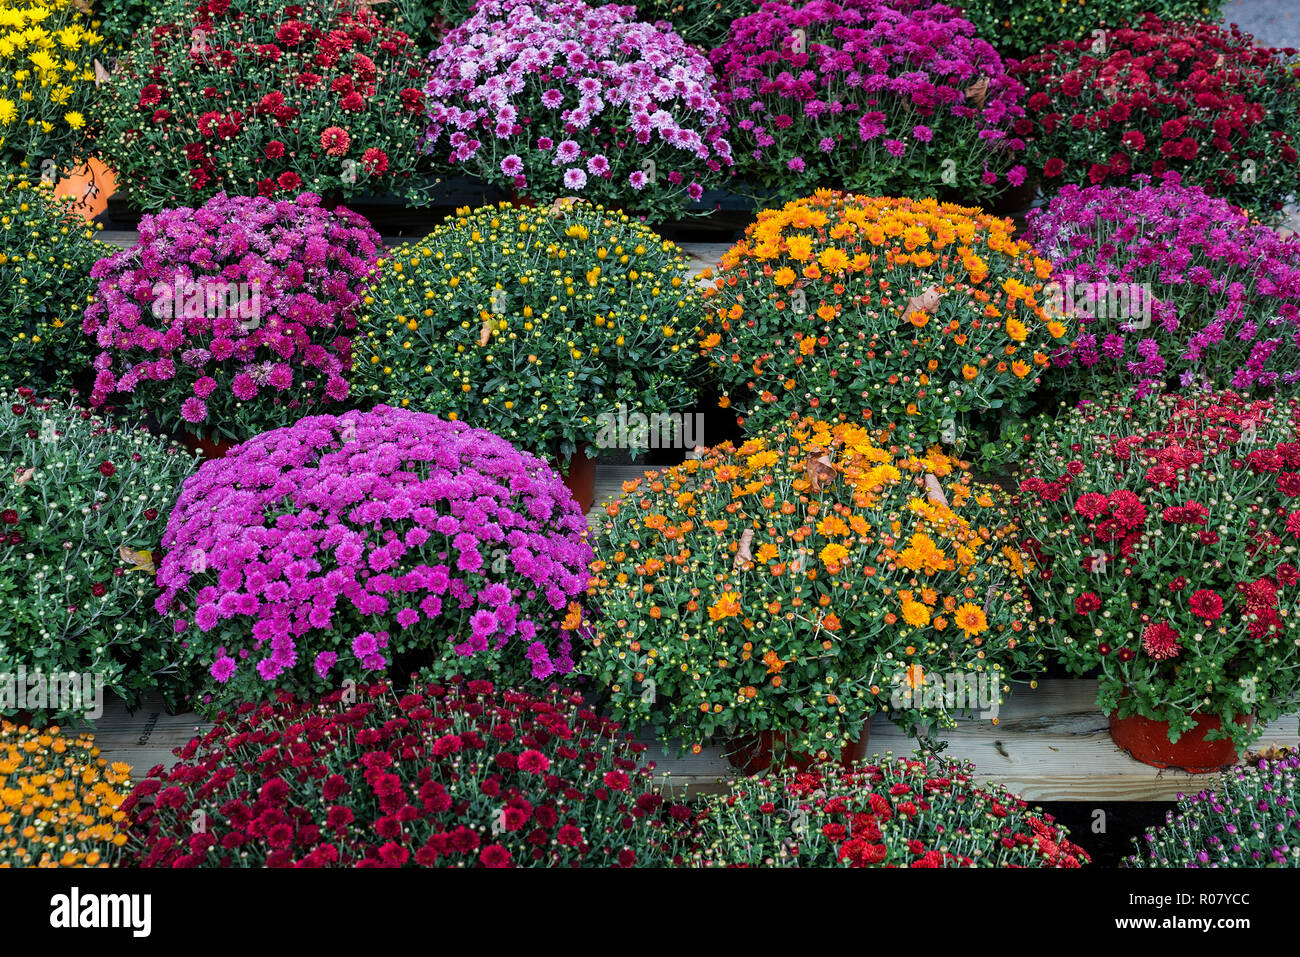 Variety of healthy mums for sale, Deleware, USA. - Stock Image